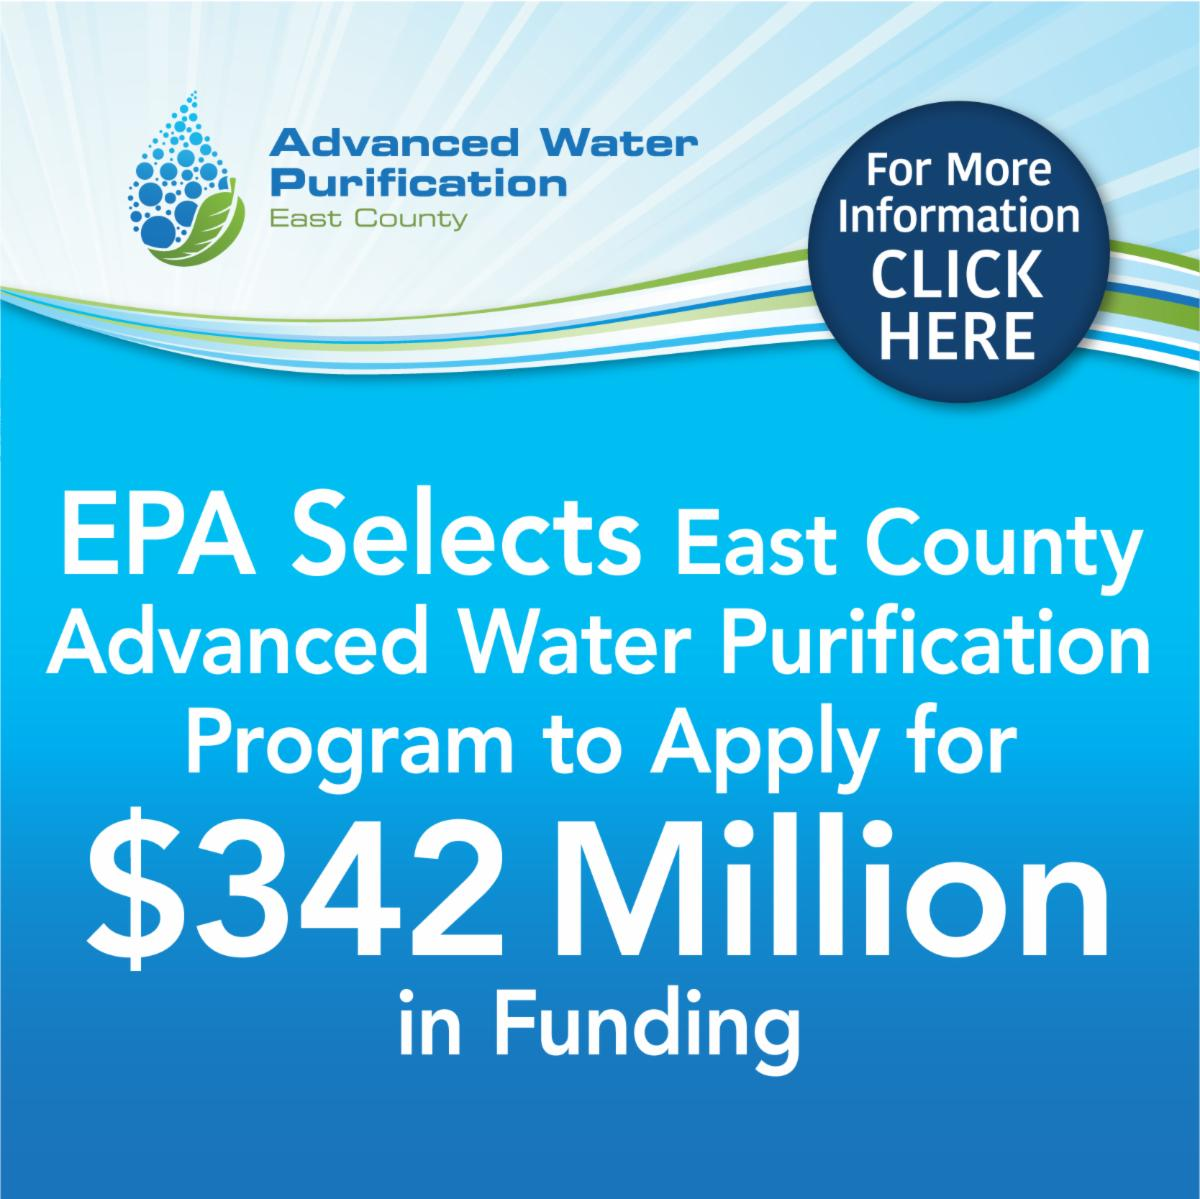 EPA Selects East County AWP to Apply for _342 Million in Funding